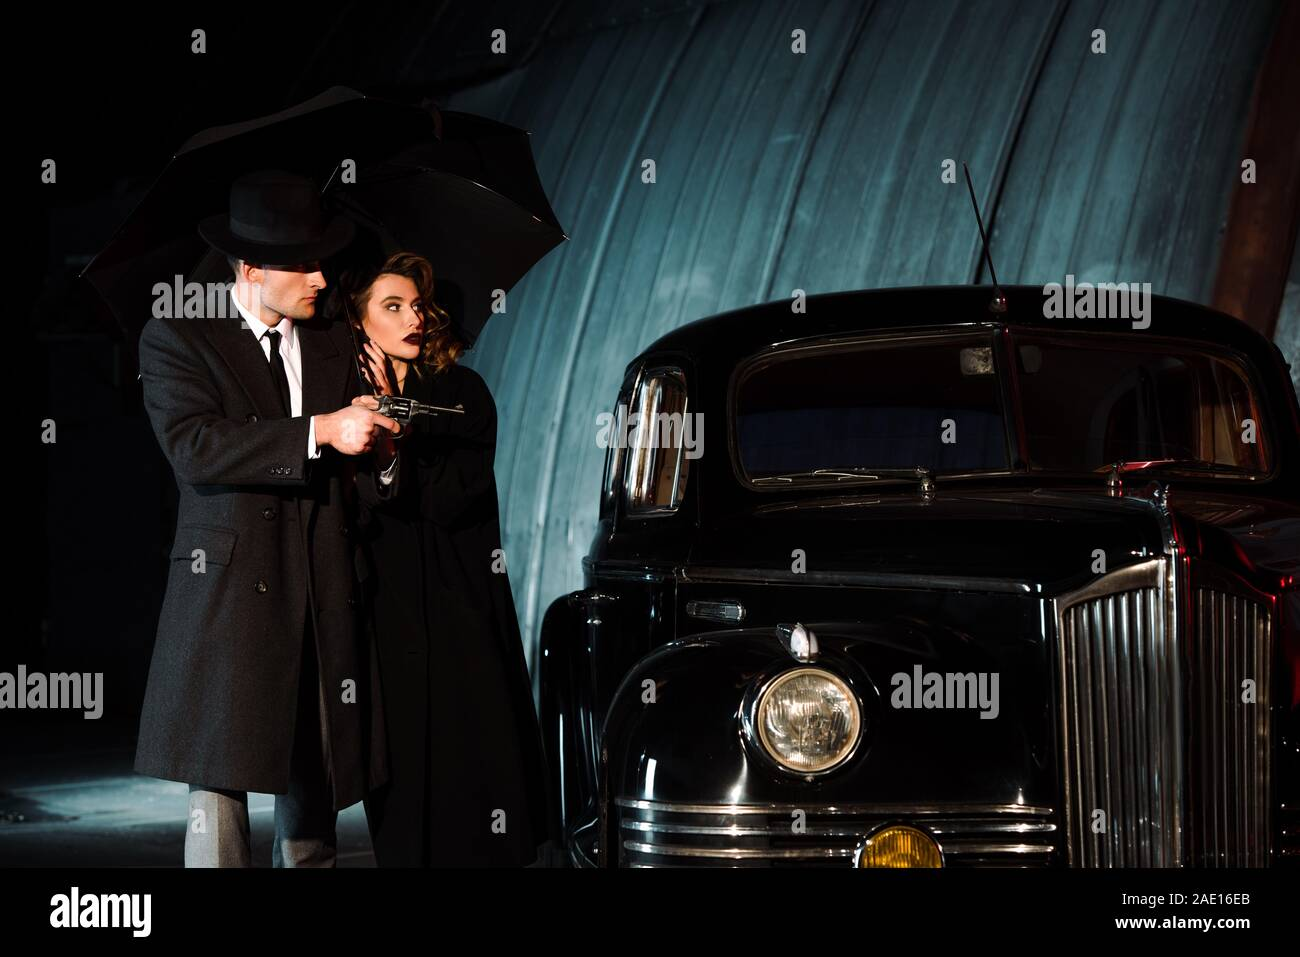 dangerous man in hat holding gun and umbrella near woman and retro car Stock Photo